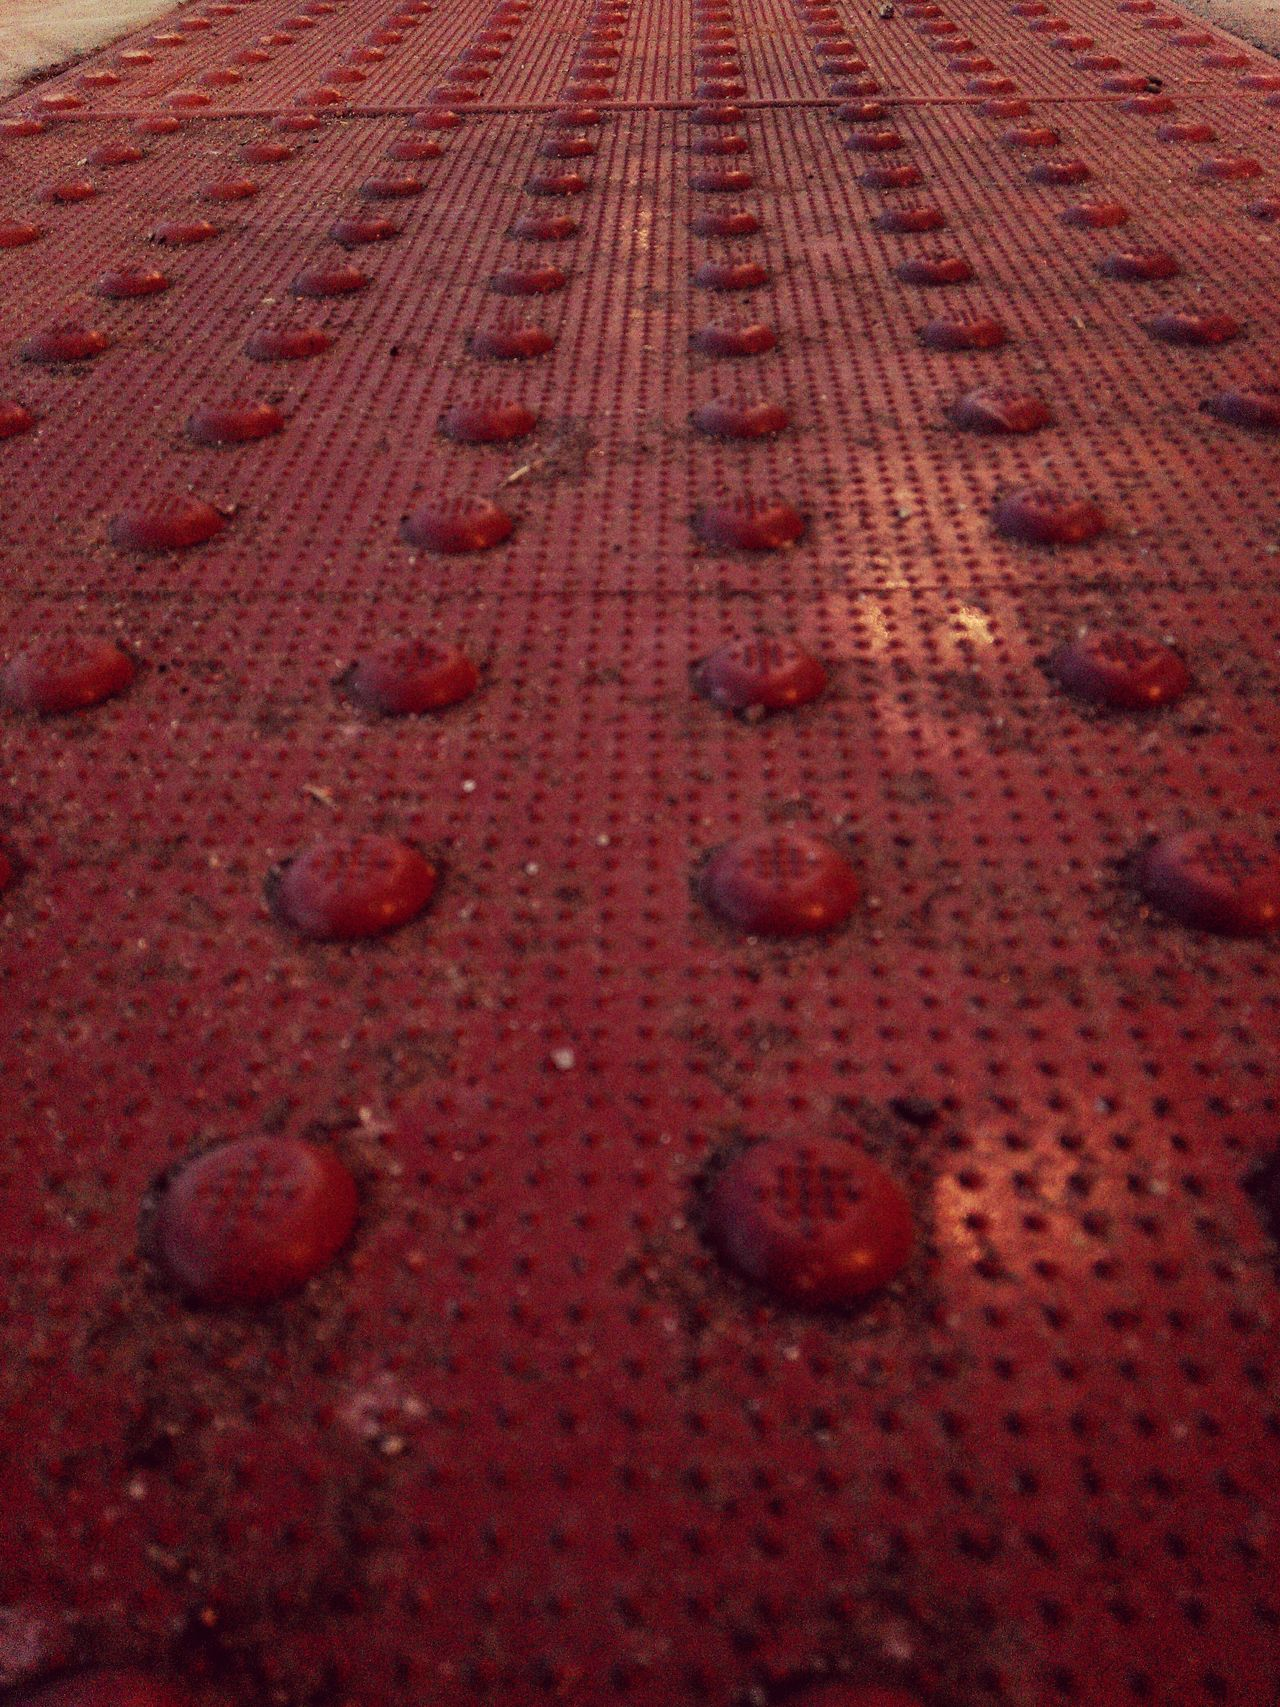 Pattern Red Full Frame Textured  Close-up Backgrounds Dark Photography Floor Nonslip Texture Angles And Lines Textureporn Transportation Pattern, Texture, Shape And Form Floor Photography Dirty Shapes And Patterns  Perspective Grunge Bold Colors Grip Textures And Surfaces Brown Masculine Strength Hard